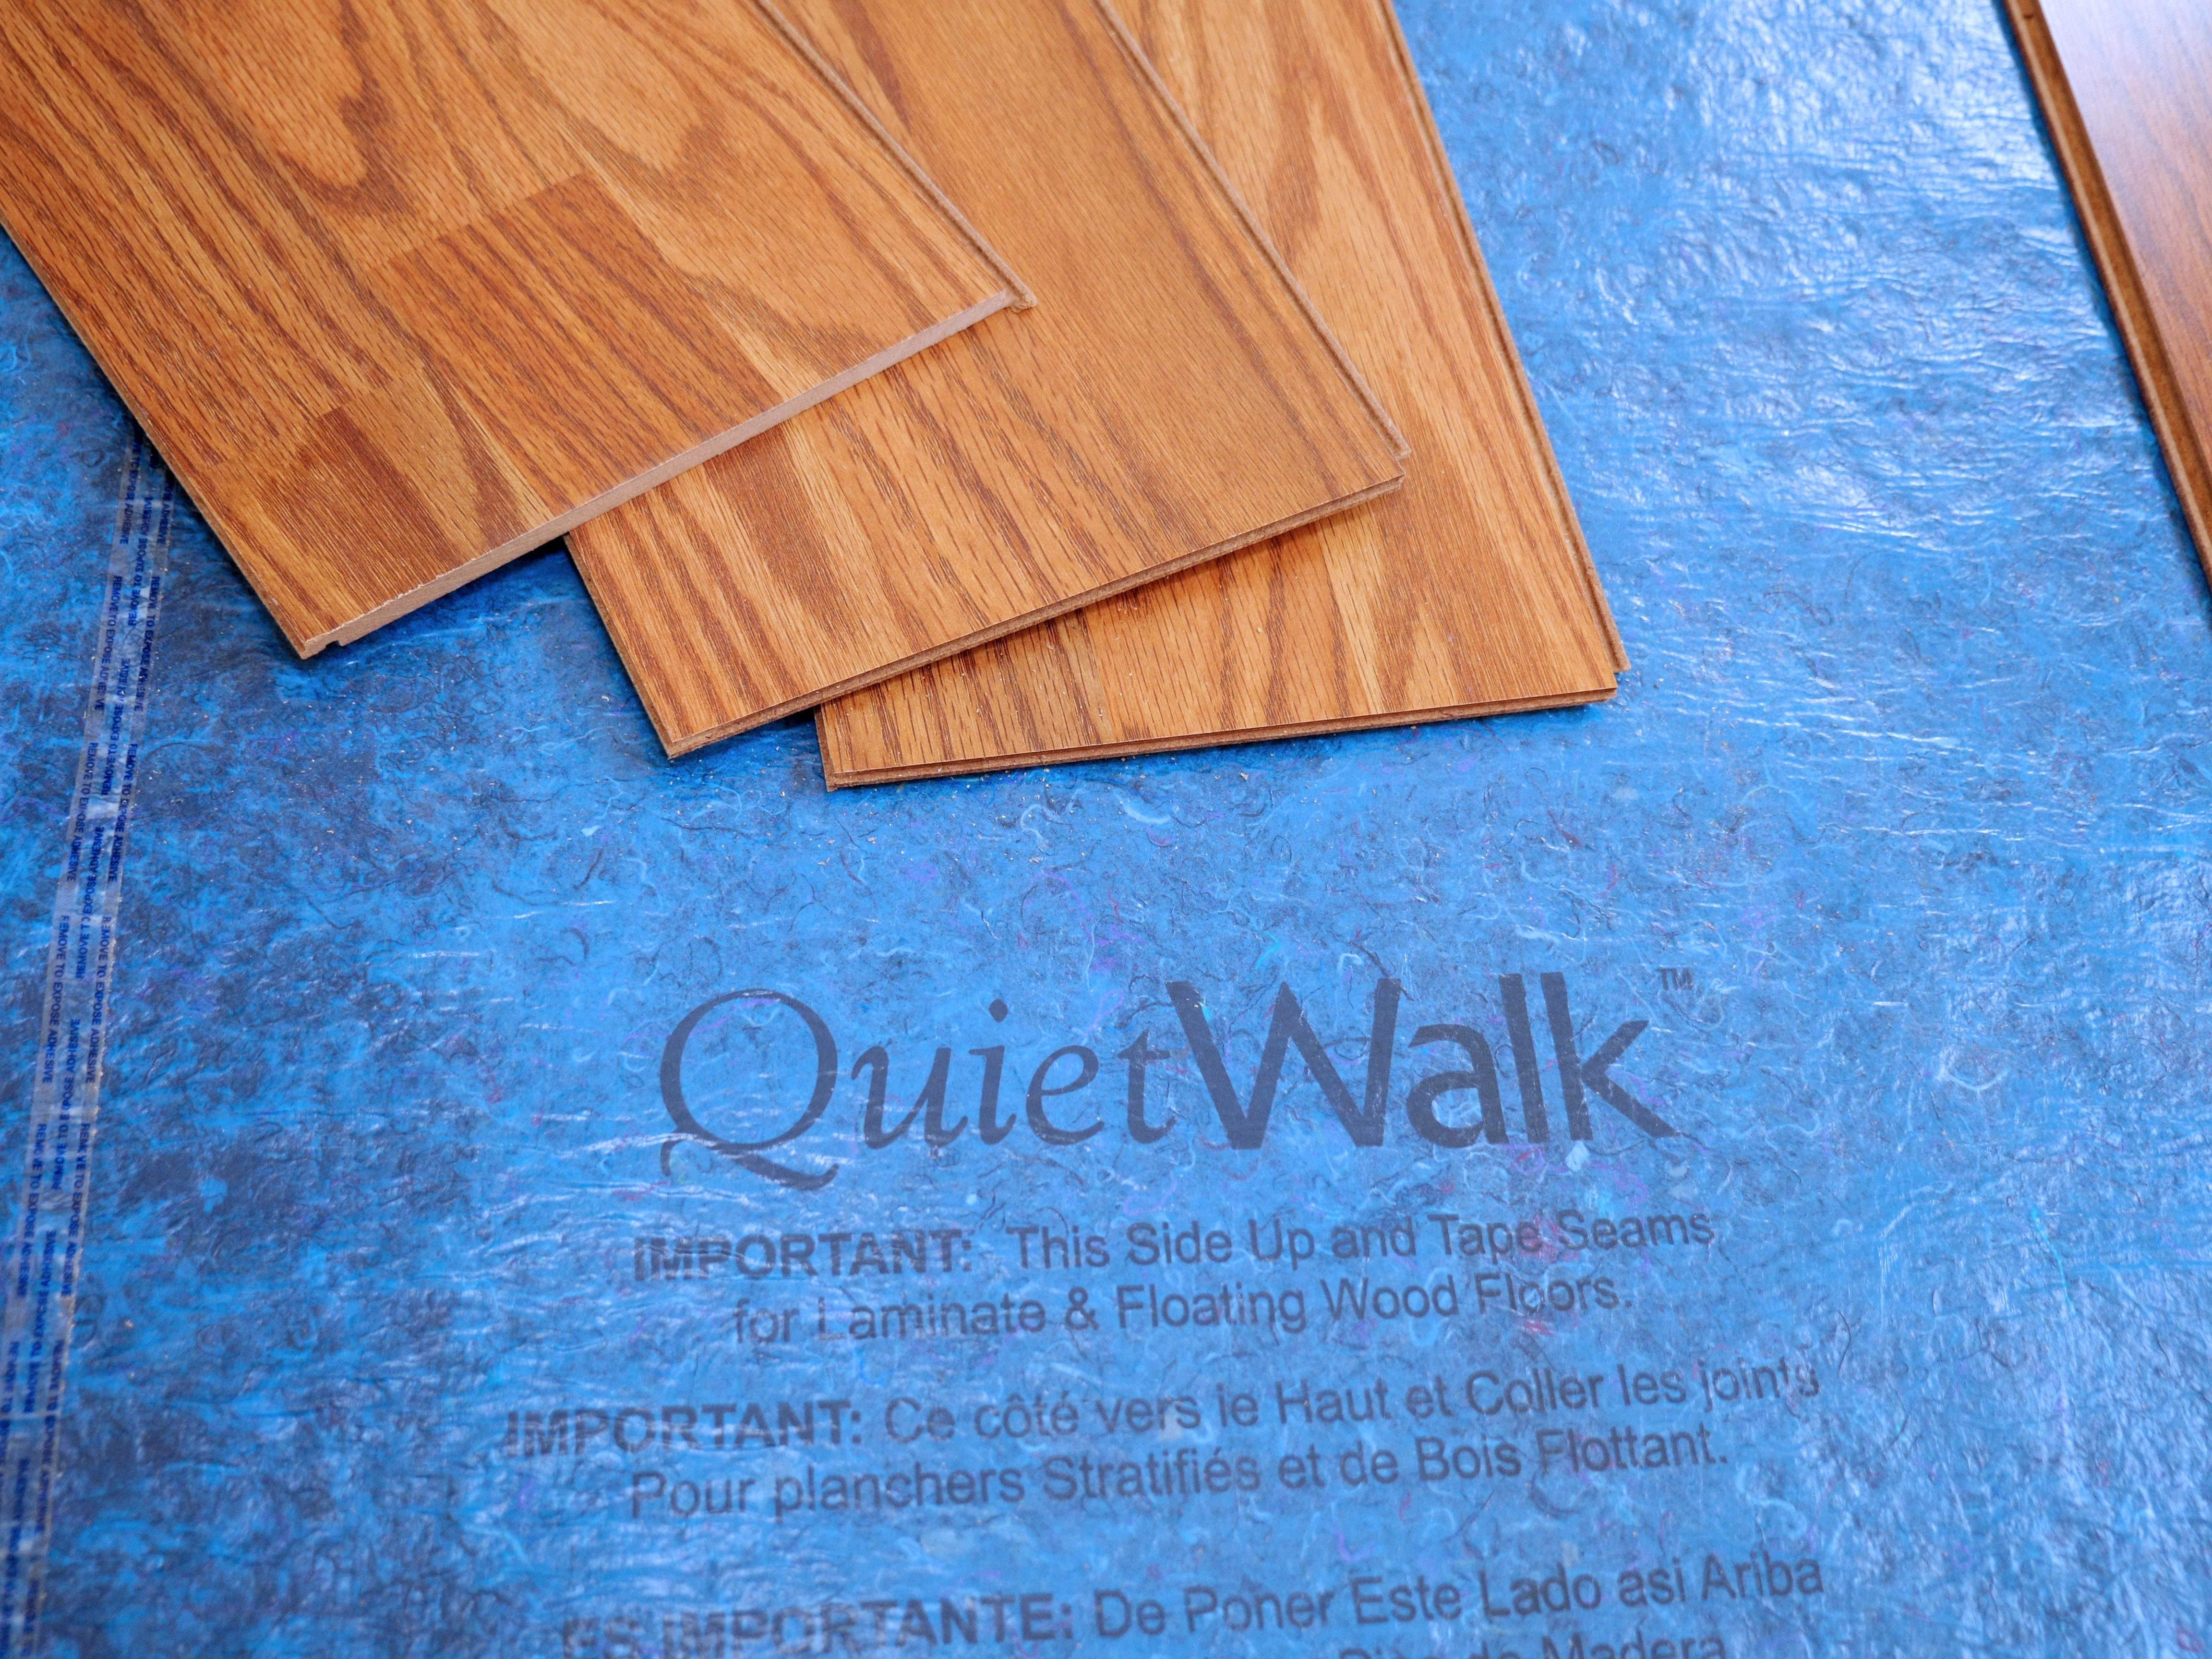 QuietWalk Acoustic Underlayment Is A Great Foundation For Your New Laminate Or Floating Wood Floors